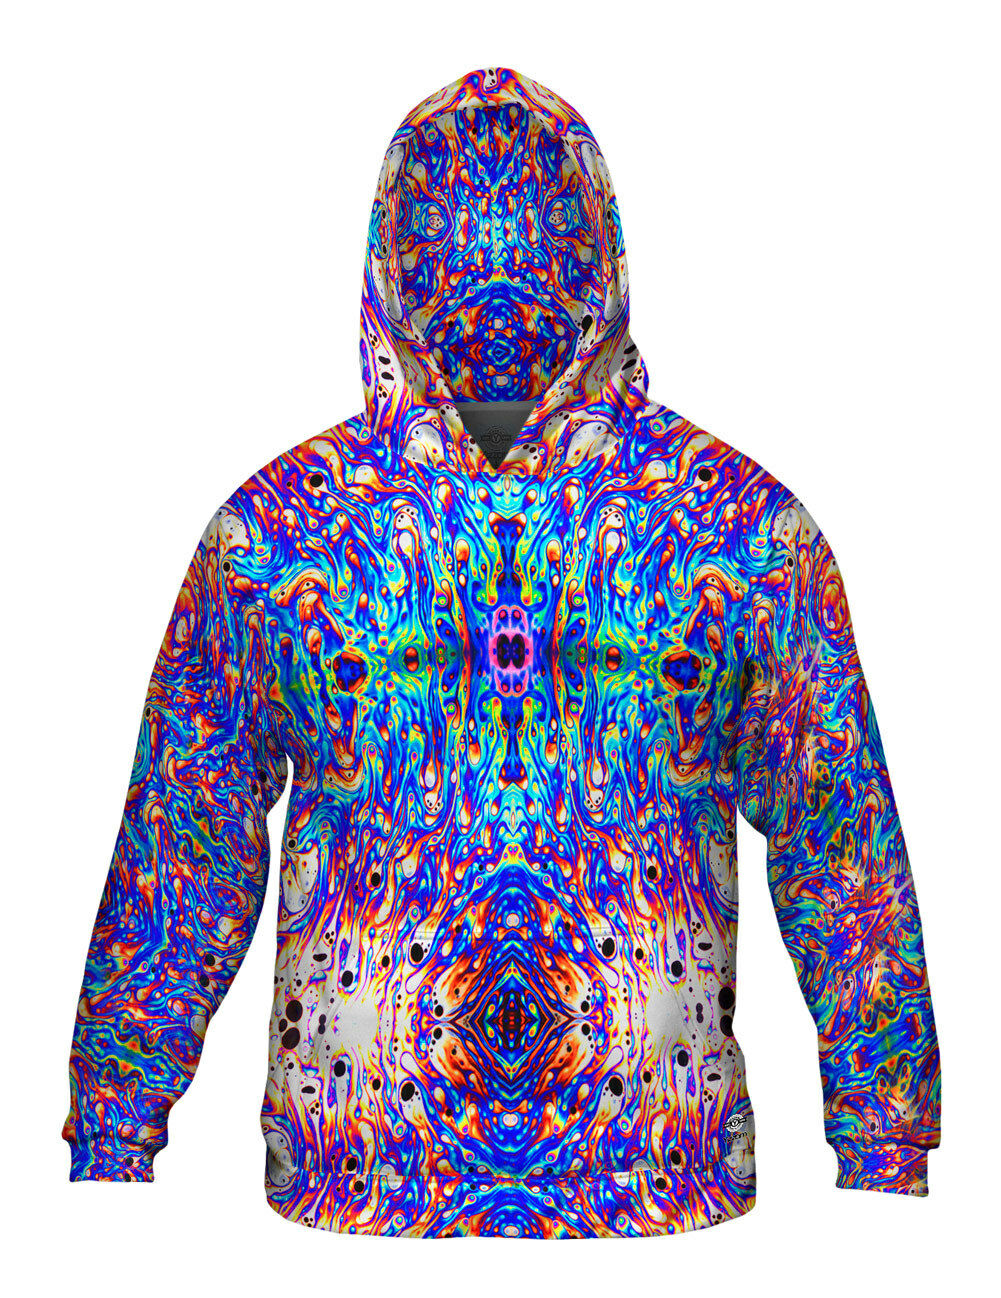 Yizzam- Psychedelic Neon Soap Party Violet - New  Herren Hoodie Sweater XS S M L X